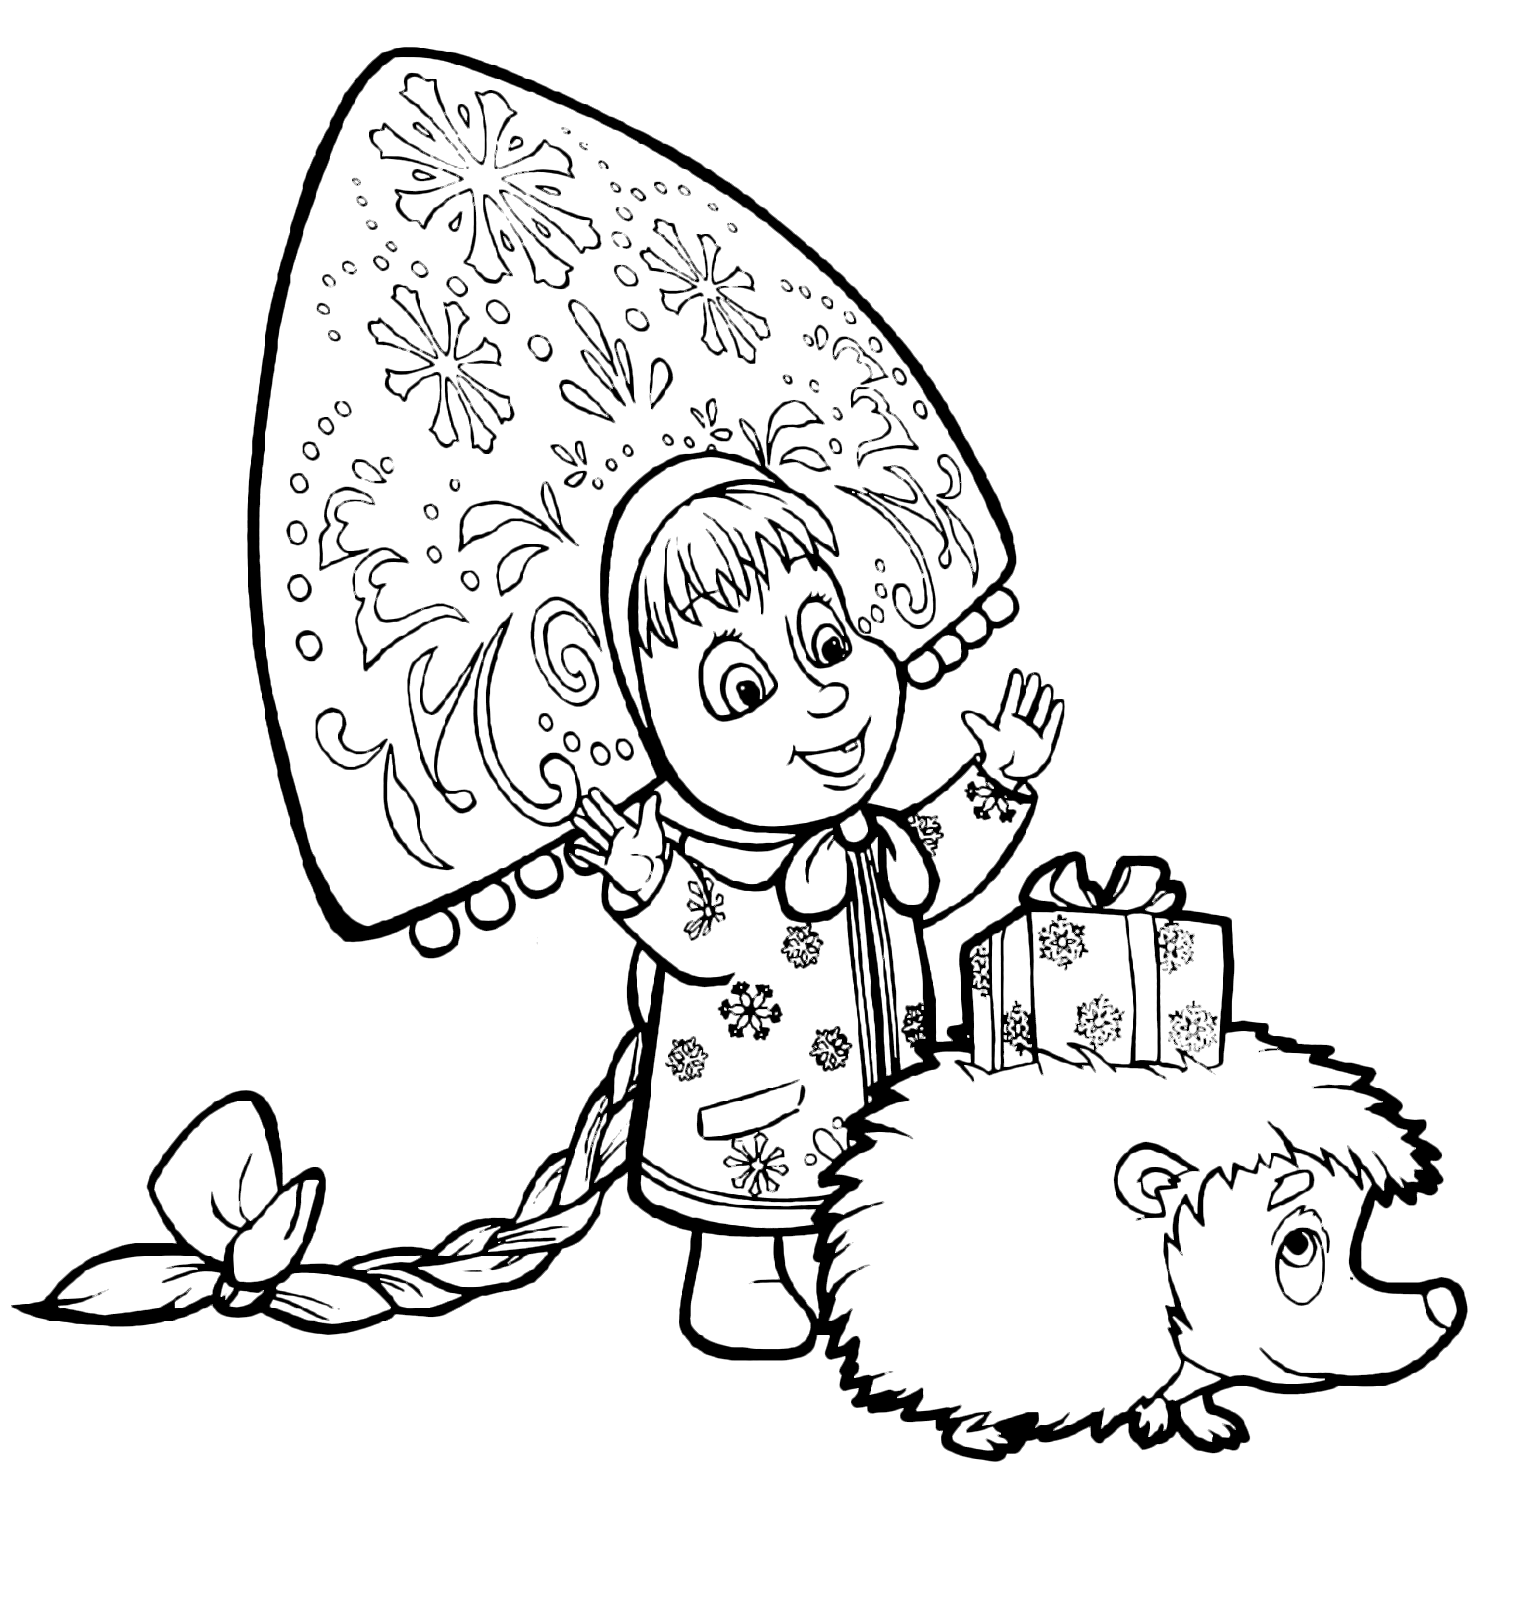 Bear Coloring Page Masha With A Russian Hat Looks Gift On The Back Of Hedgehog